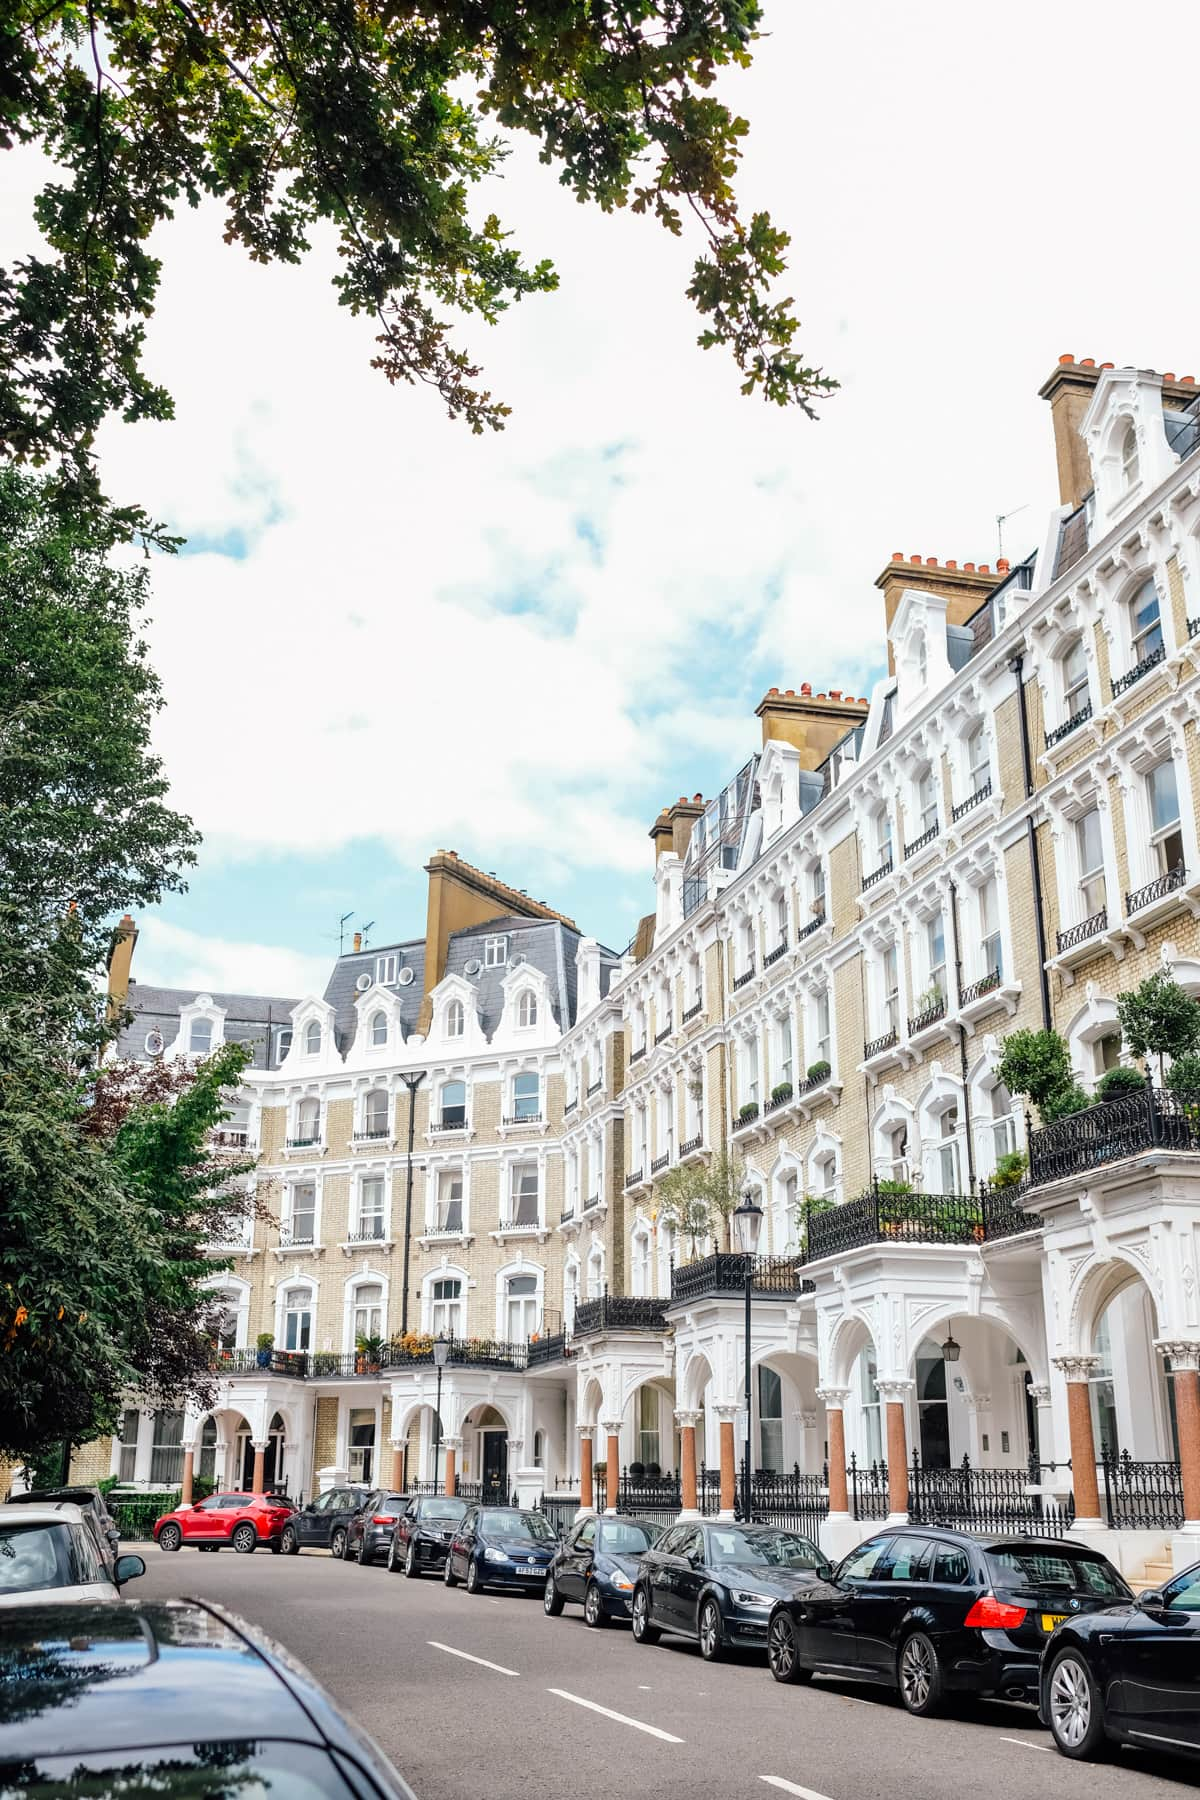 Kensington, London - Photos of Our British Isles Cruise with Family! | Part 1 # travel #familytravel #cruise #decor #design #britishisles